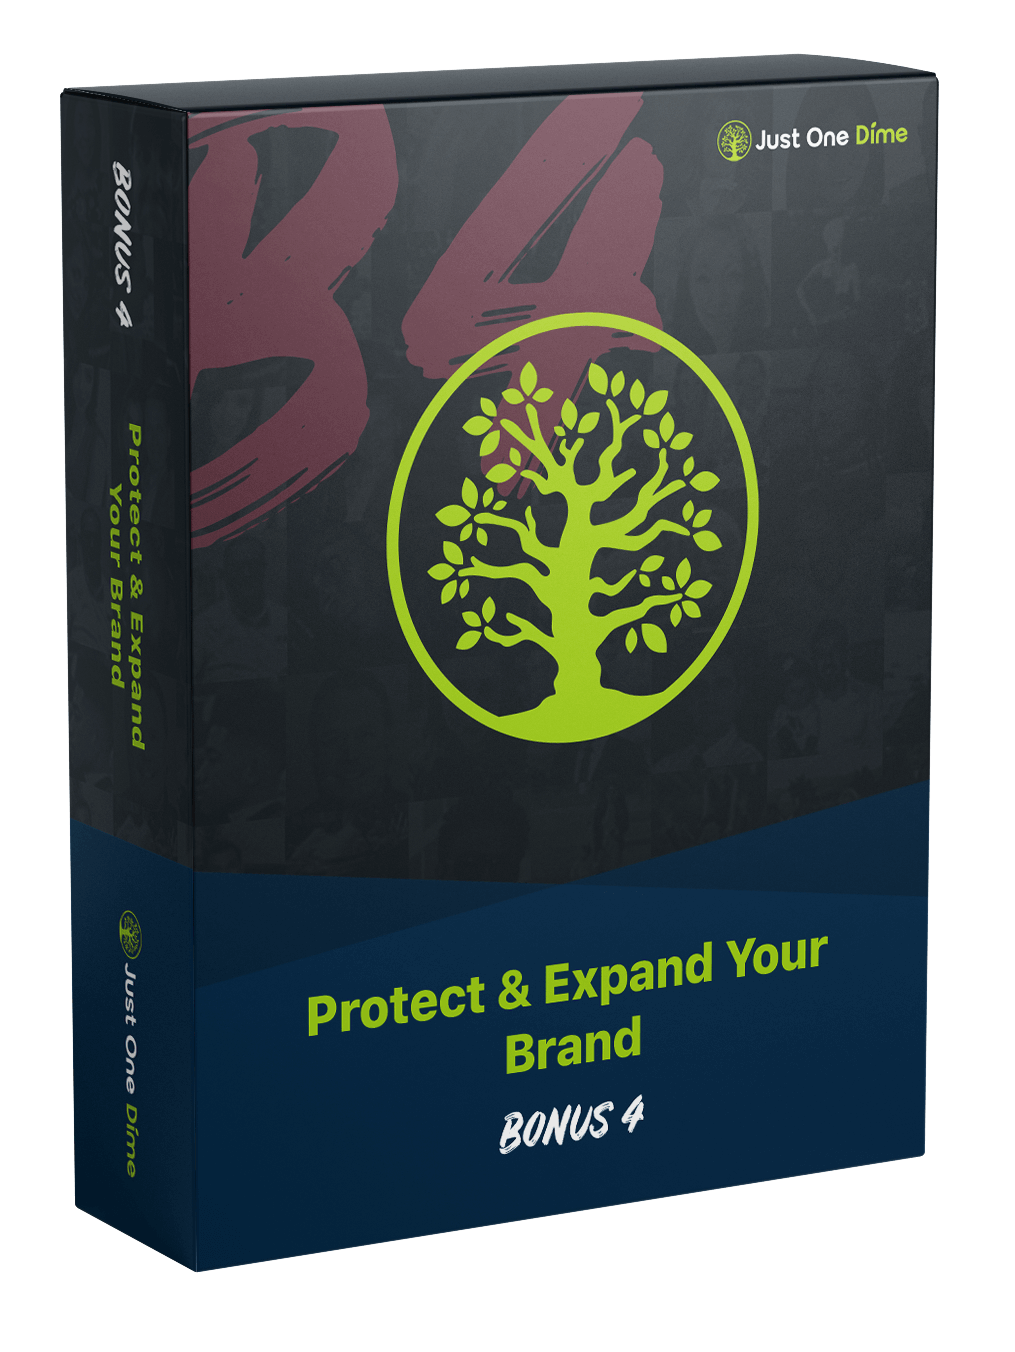 Lawyer training for brand protection | Just One Dime